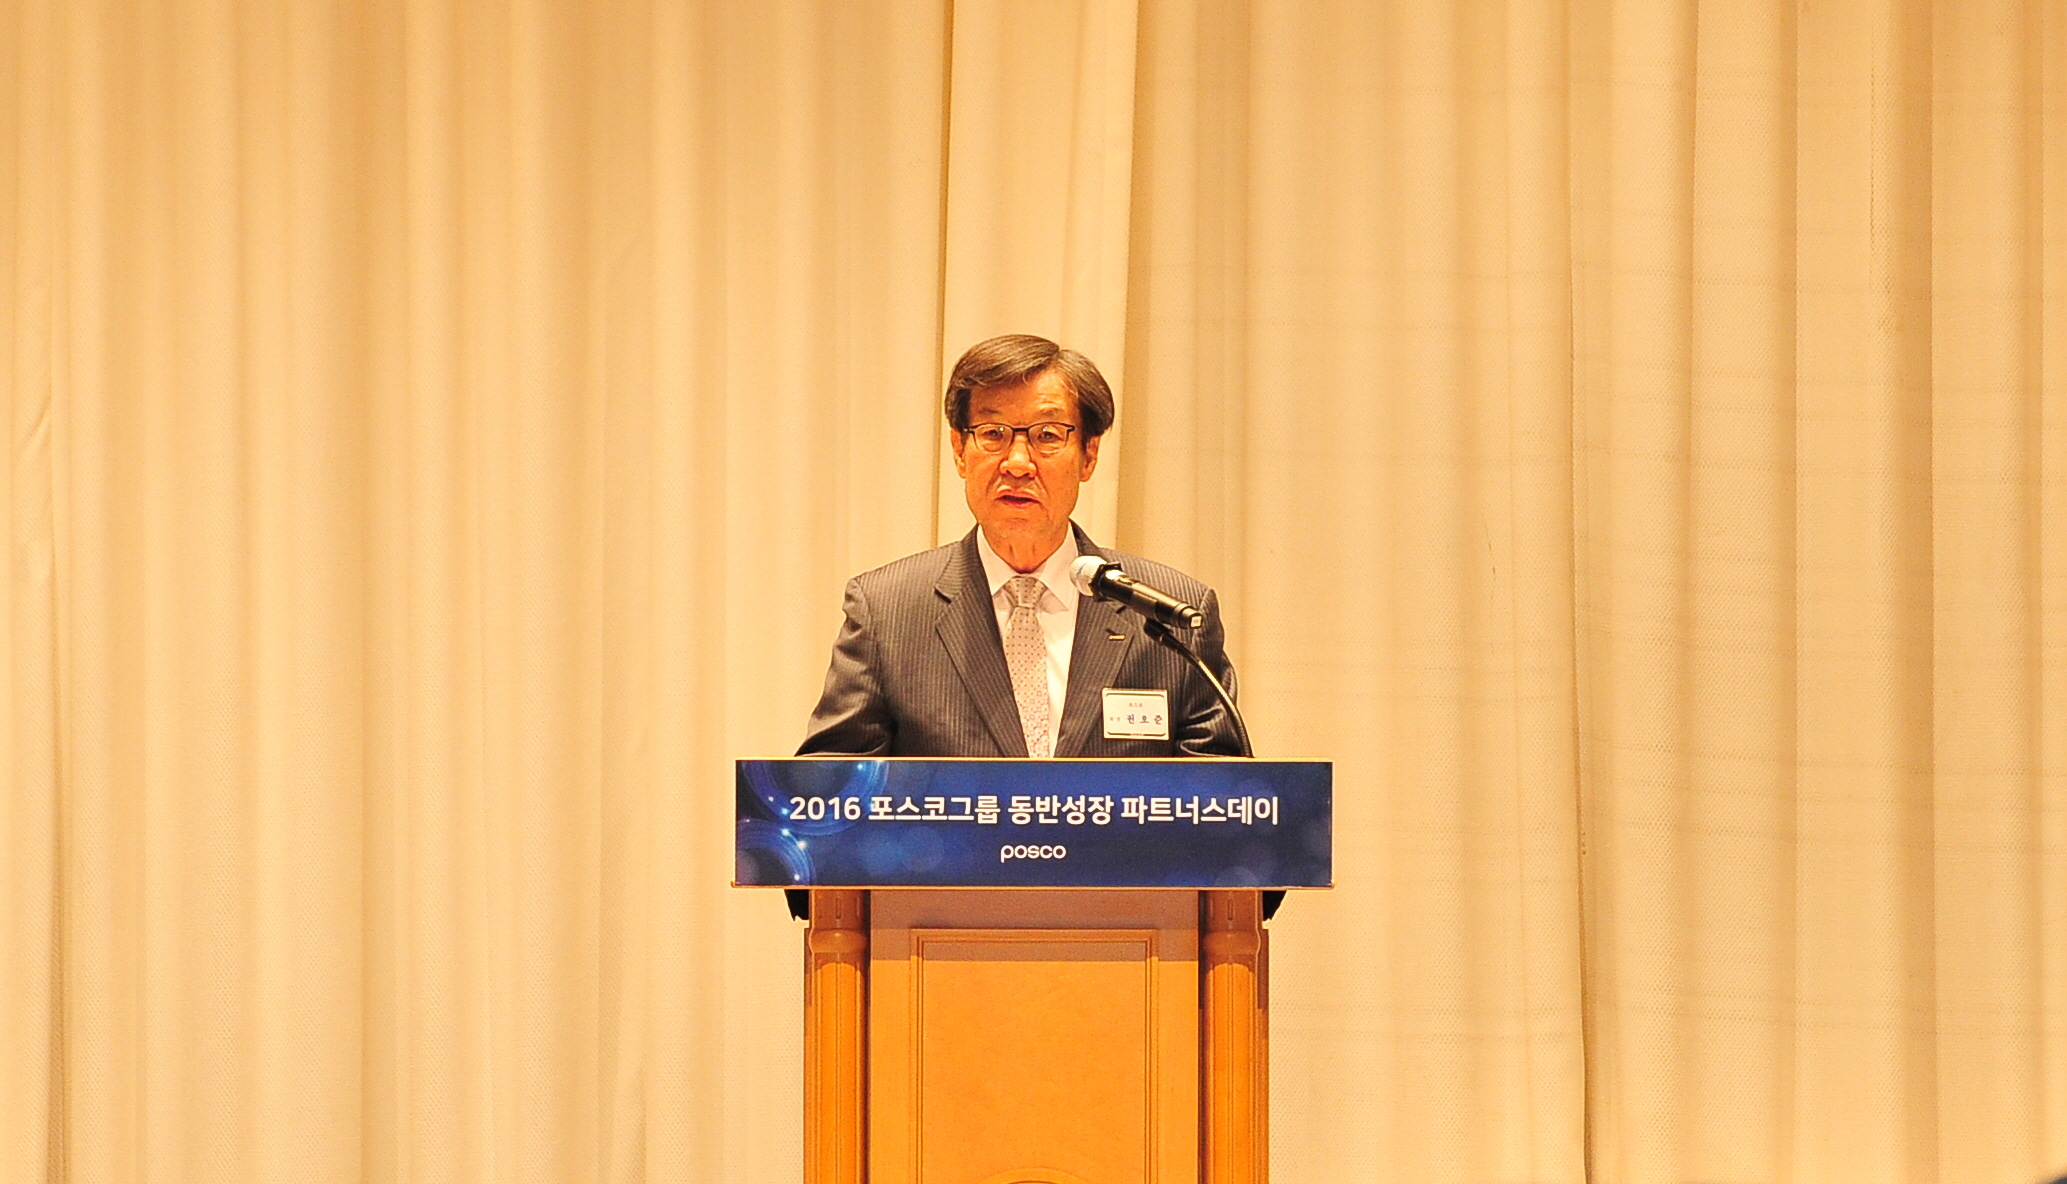 POSCO's operating profit rose 18% year on year to 2.84 trillion won, which help chairman Kwon Oh-joon continue to serve as chairman of POSCO for another three-year term.